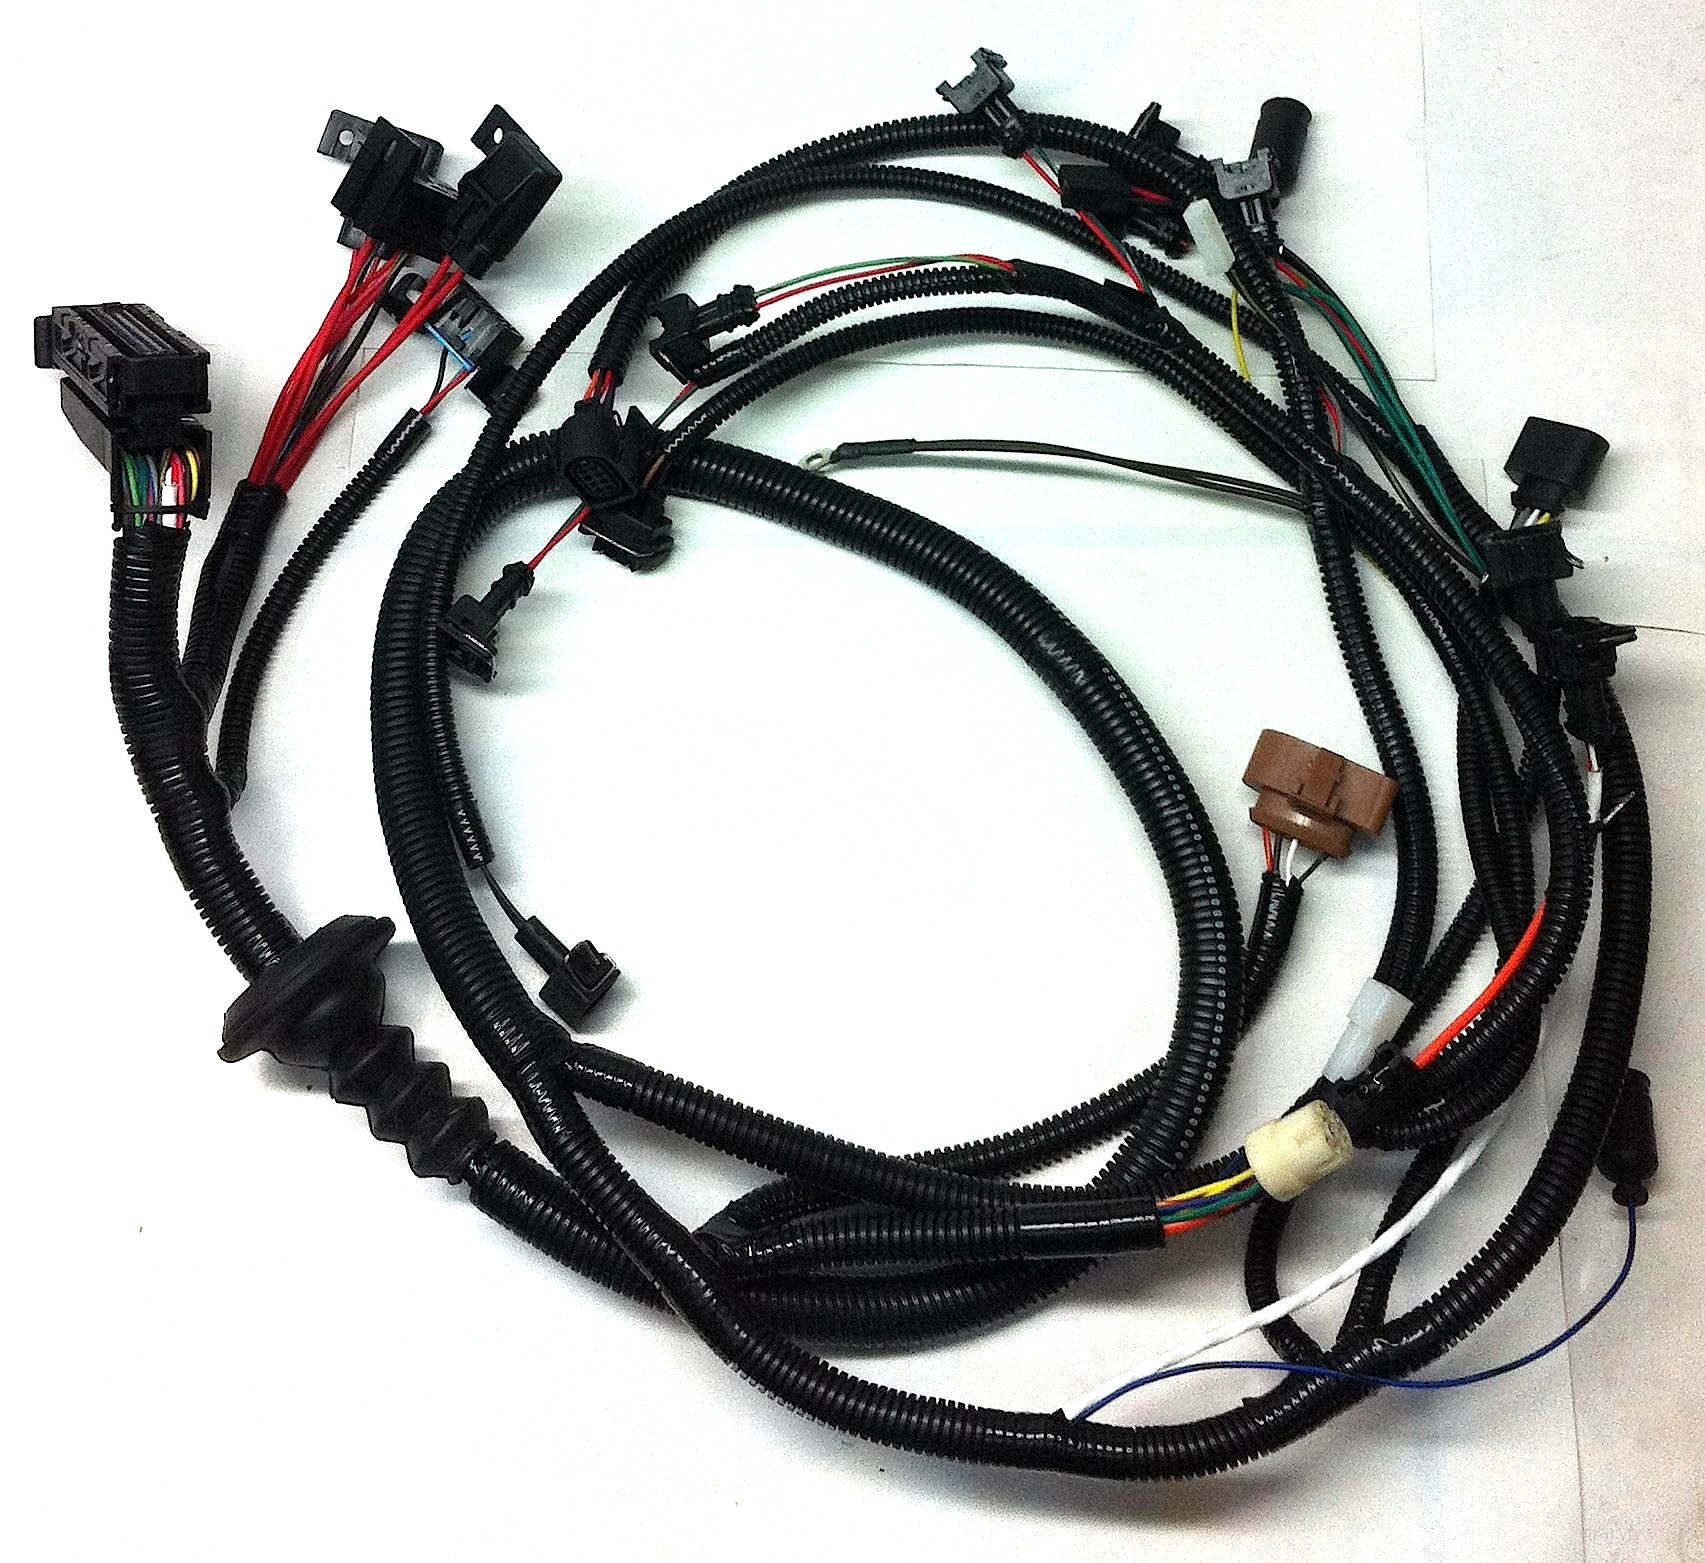 Wiring_Harness_2LR 2lr tiico conversion wiring harness foreign auto & supply, inc tdi swap wiring harness at sewacar.co